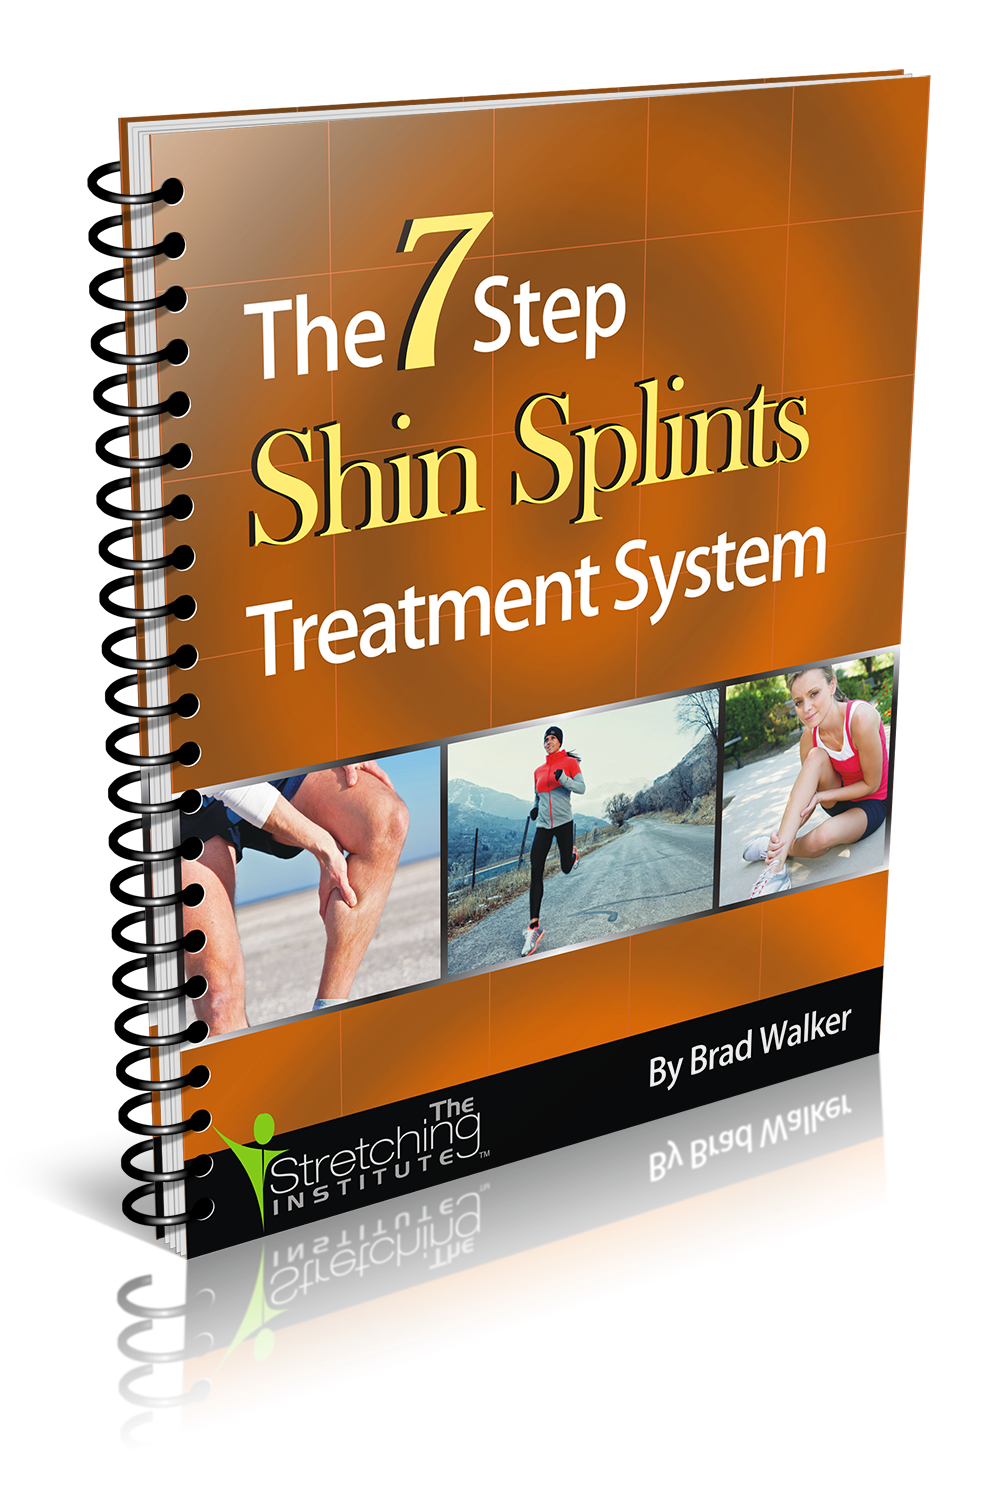 The 7 Step Shin Splints Treatment System